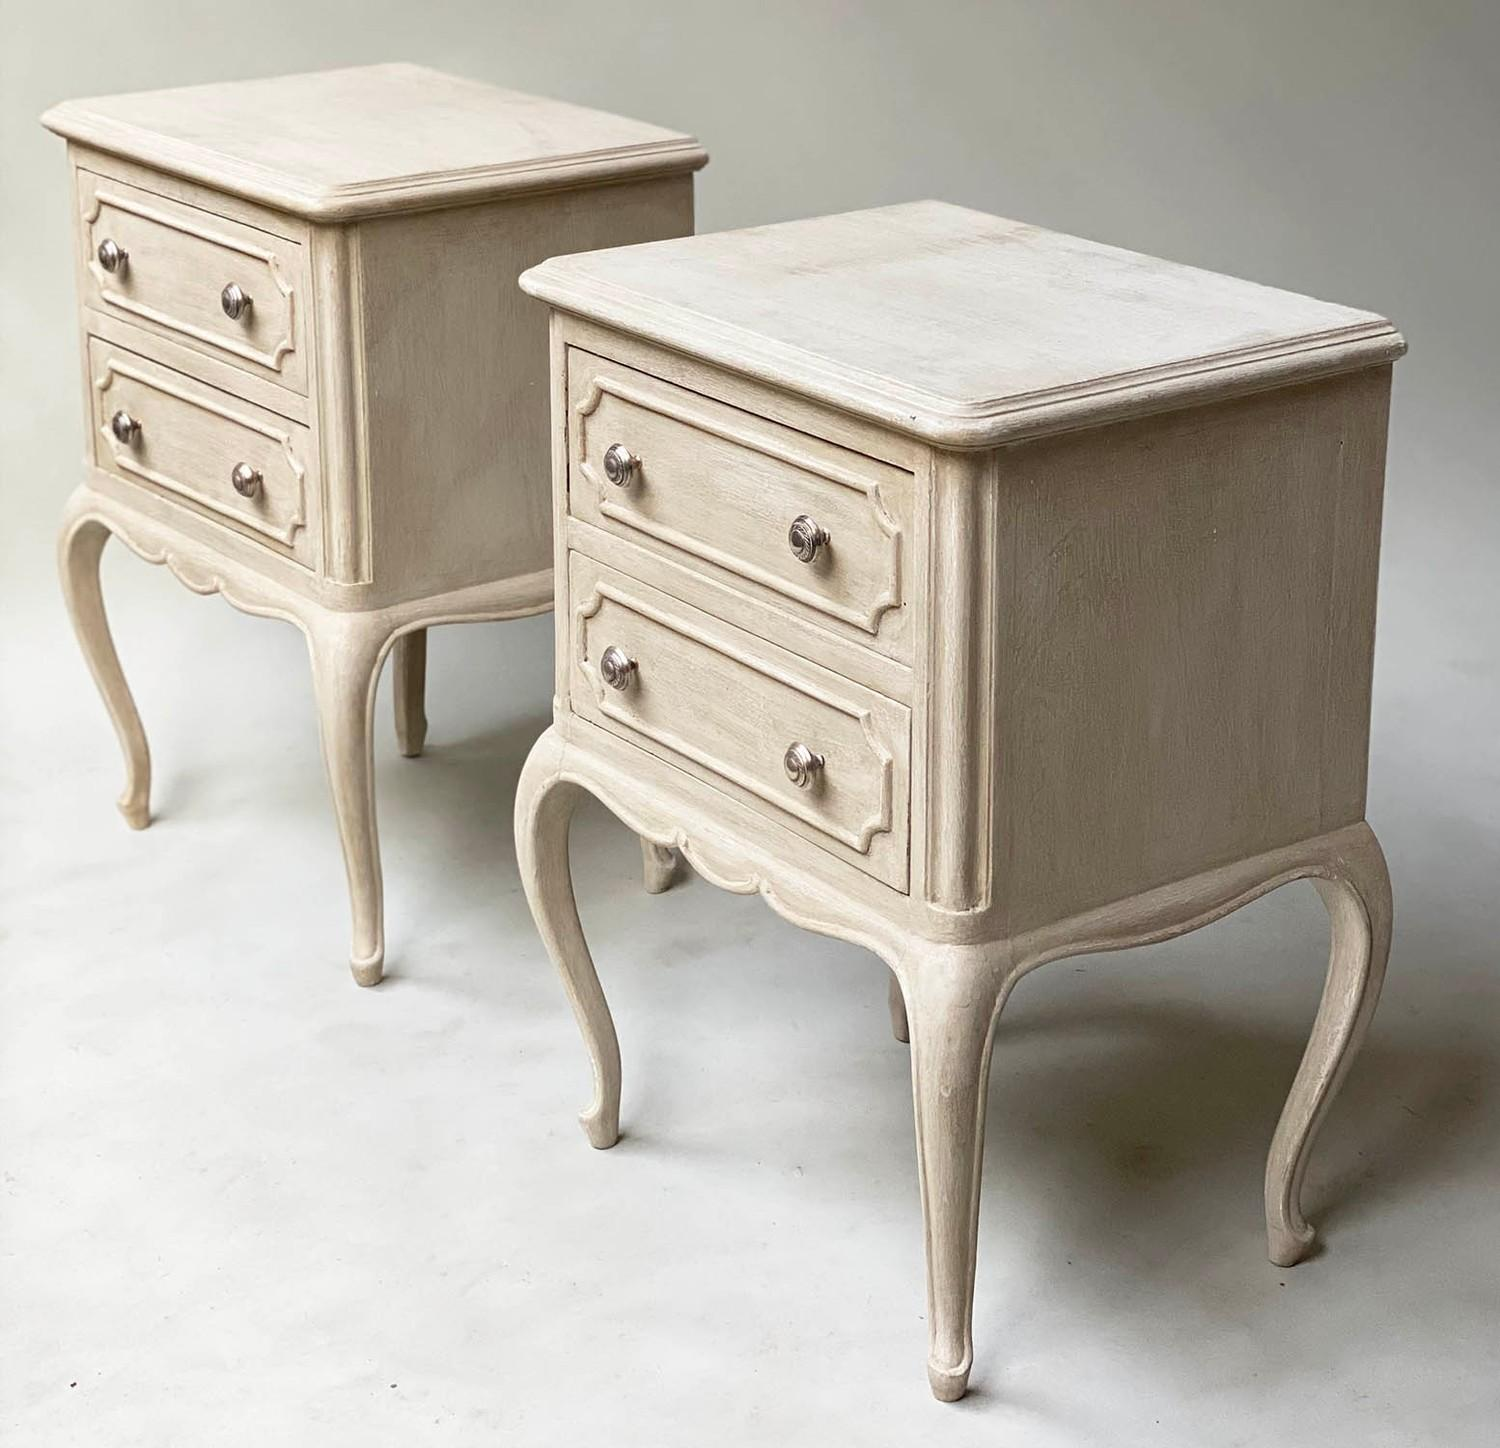 BEDSIDE CHESTS, a pair, French Louis XV design grey painted each with two drawers, 48cm x 36cm x - Image 5 of 5